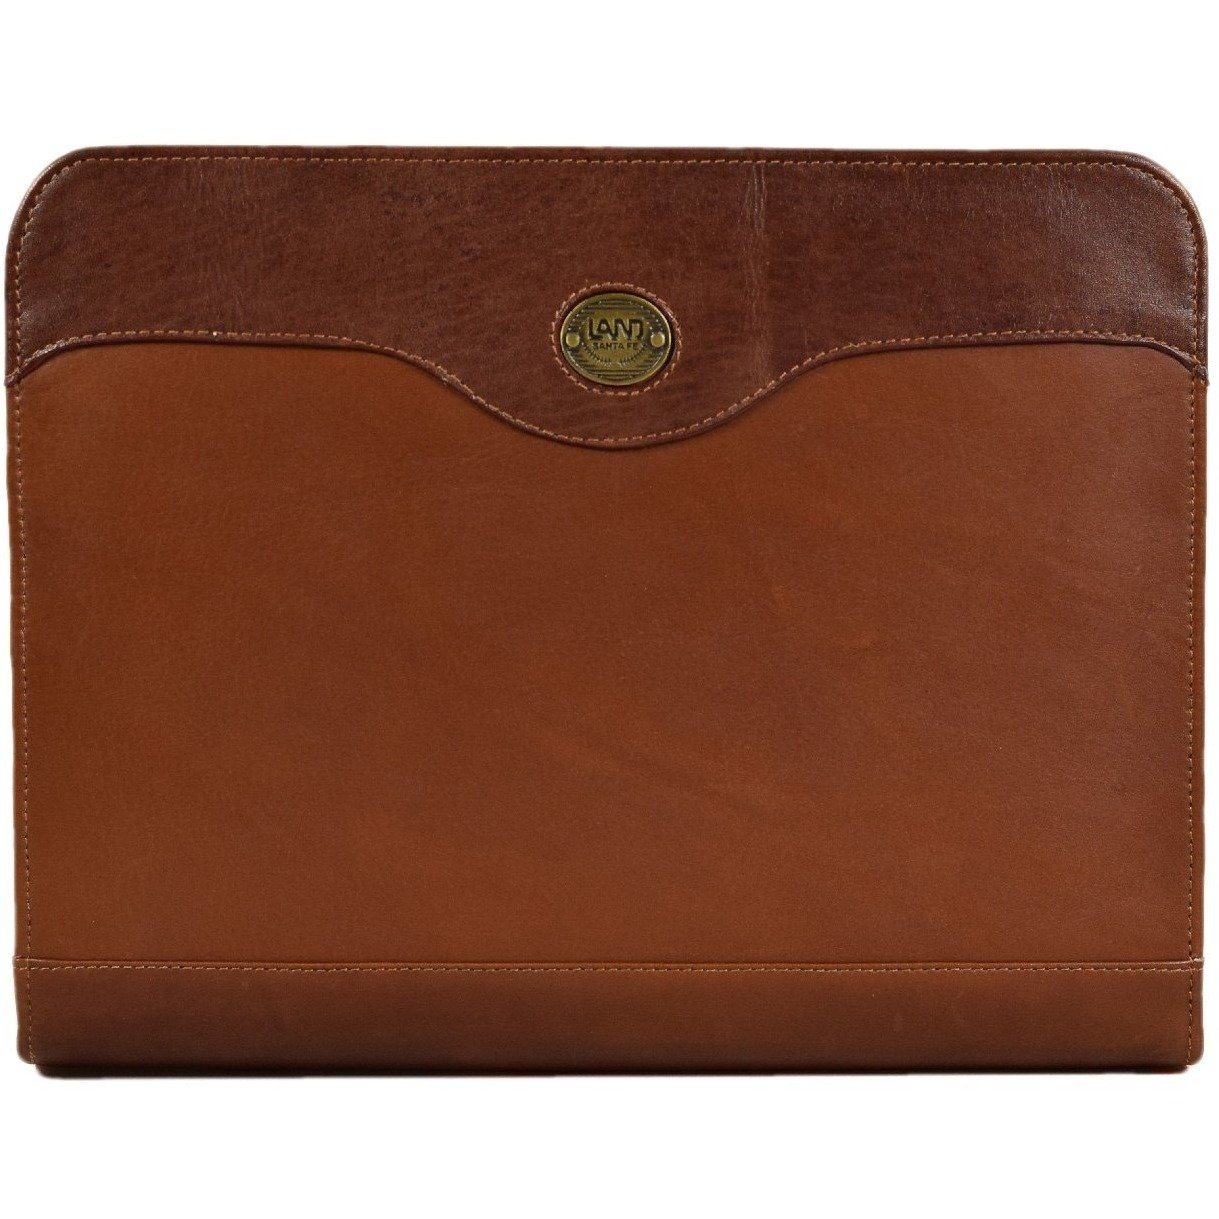 Santa Fe Letter Pad, Letter Pad | LAND Leather